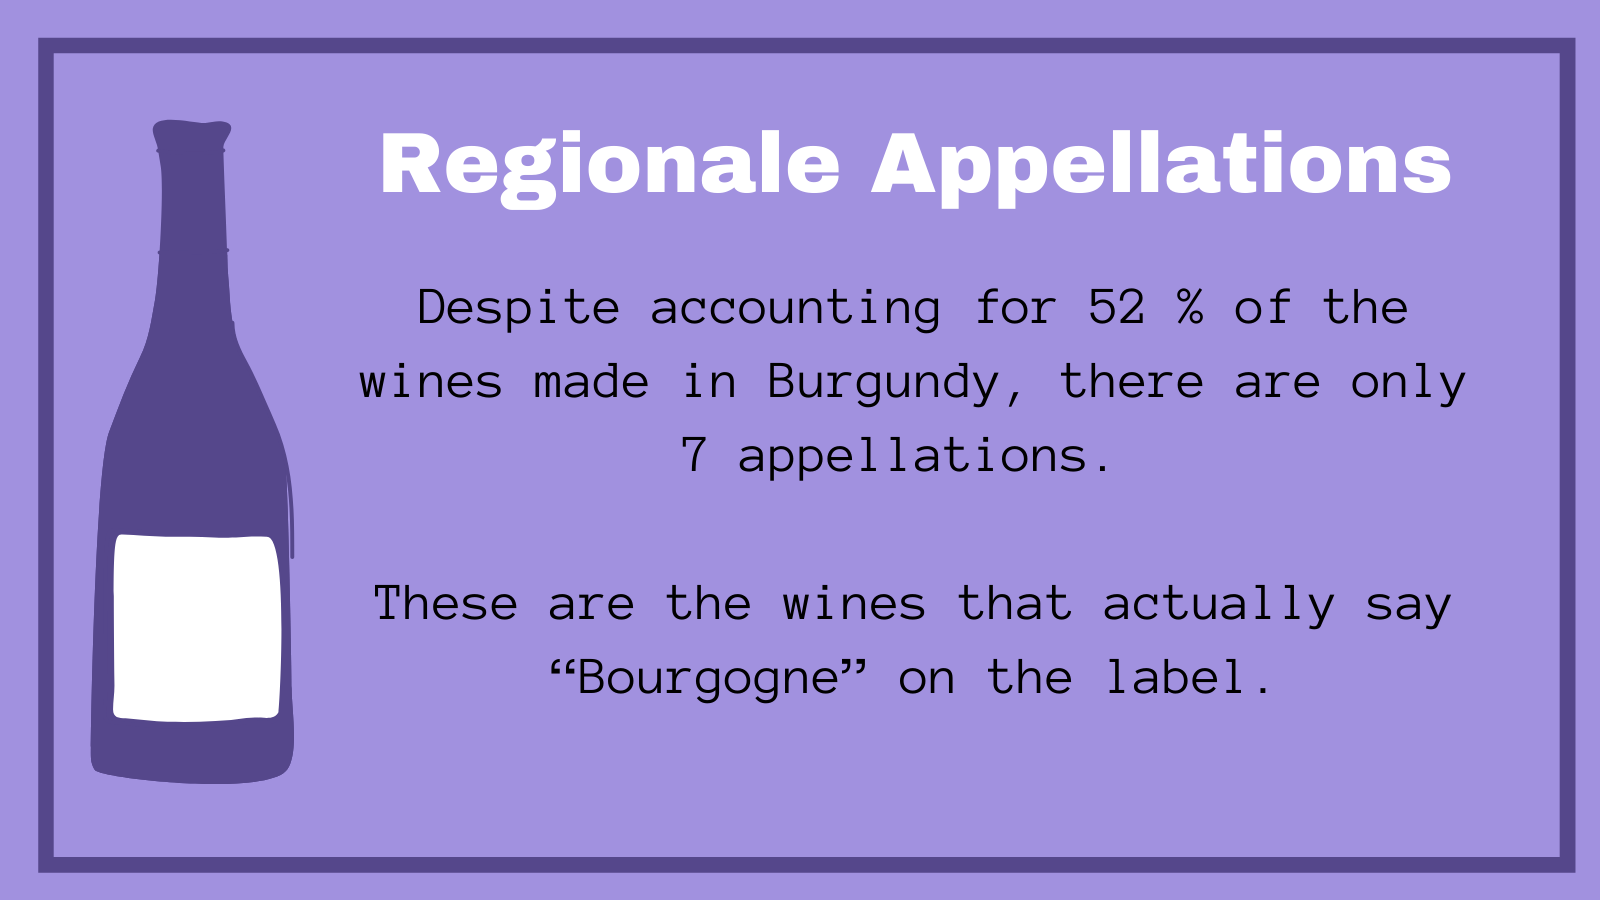 Regional Appellations Burgundy Fast Facts